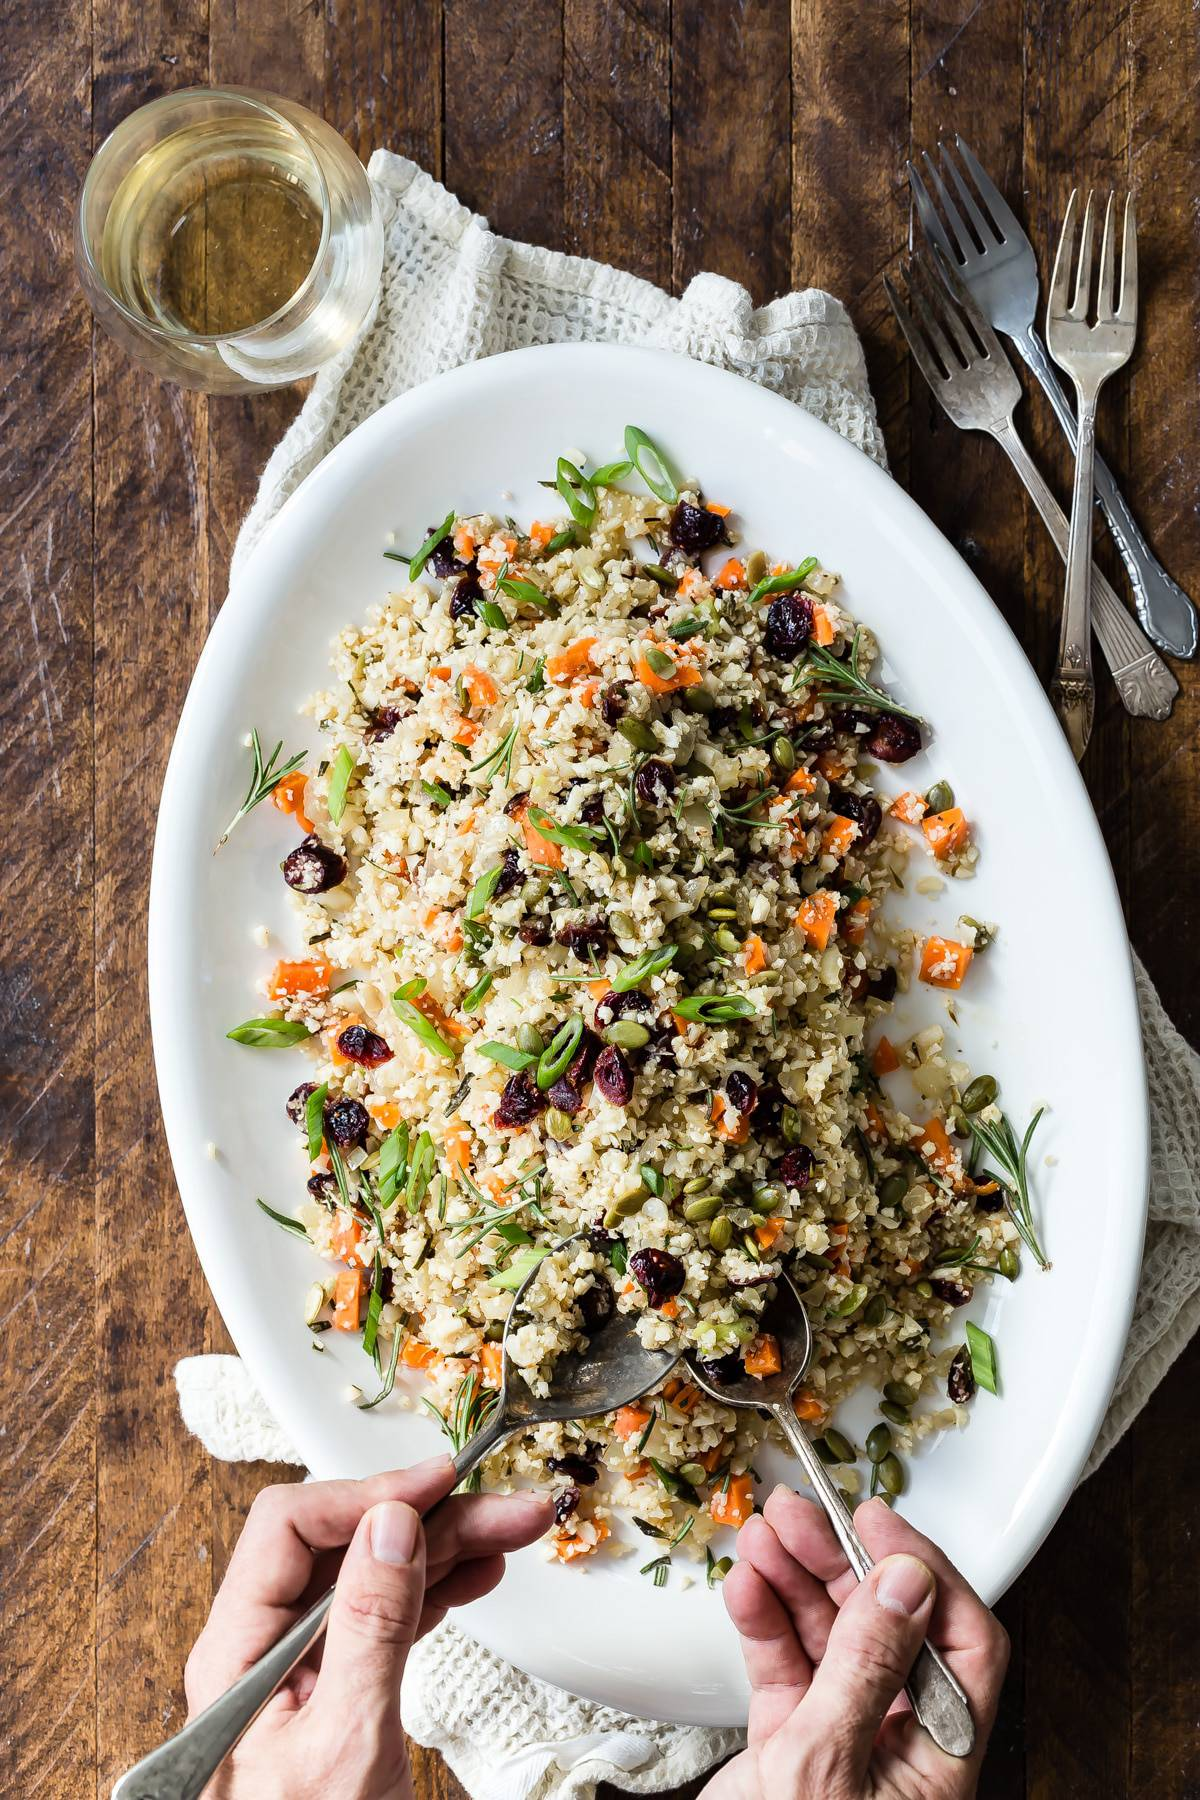 Awesome cauliflower rice side dish loaded with cranberries, pumpkin seeds and spices! #thanksgiving #vegetarian